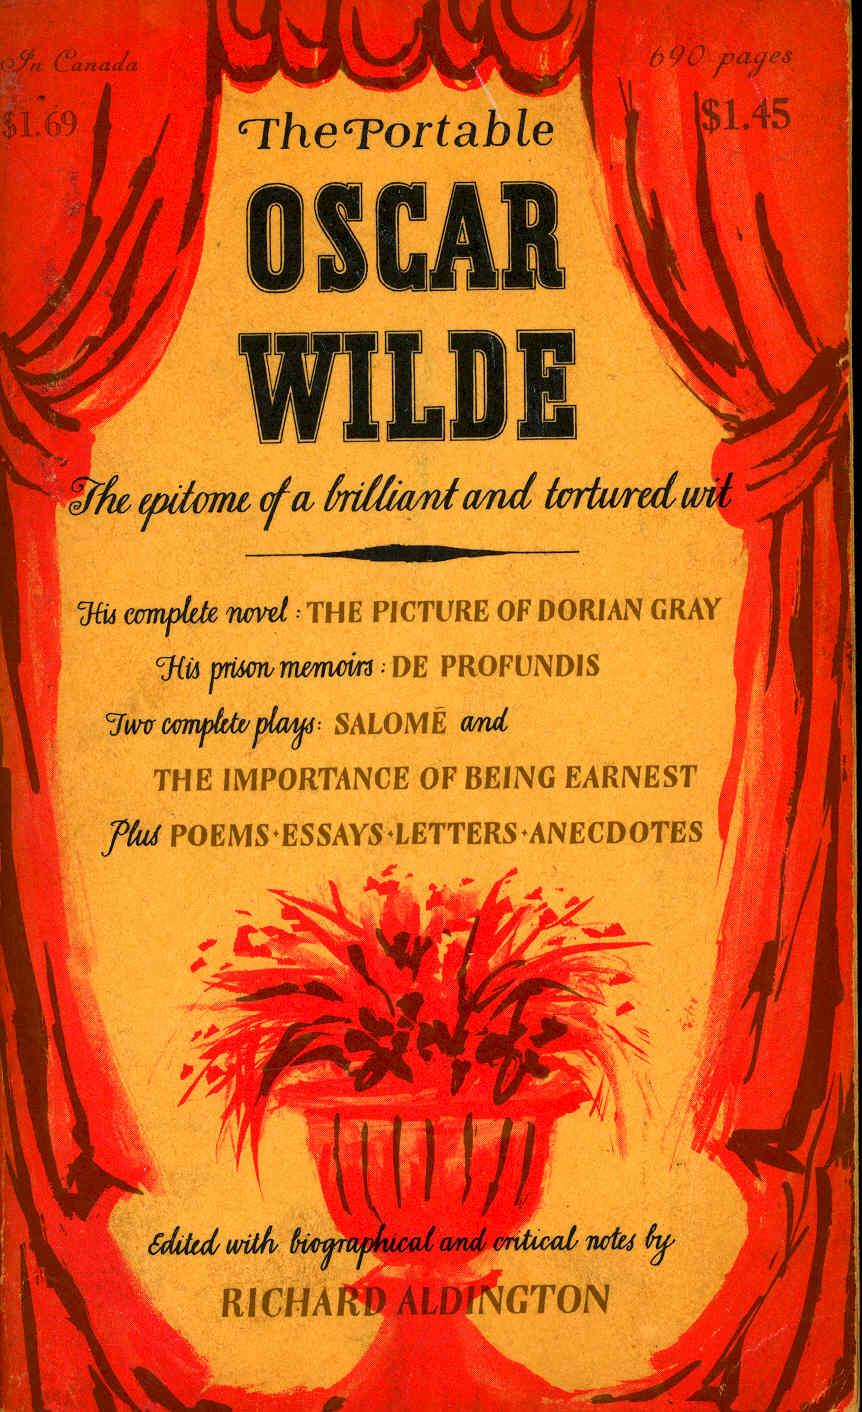 de profundis and salome by wilde oscar